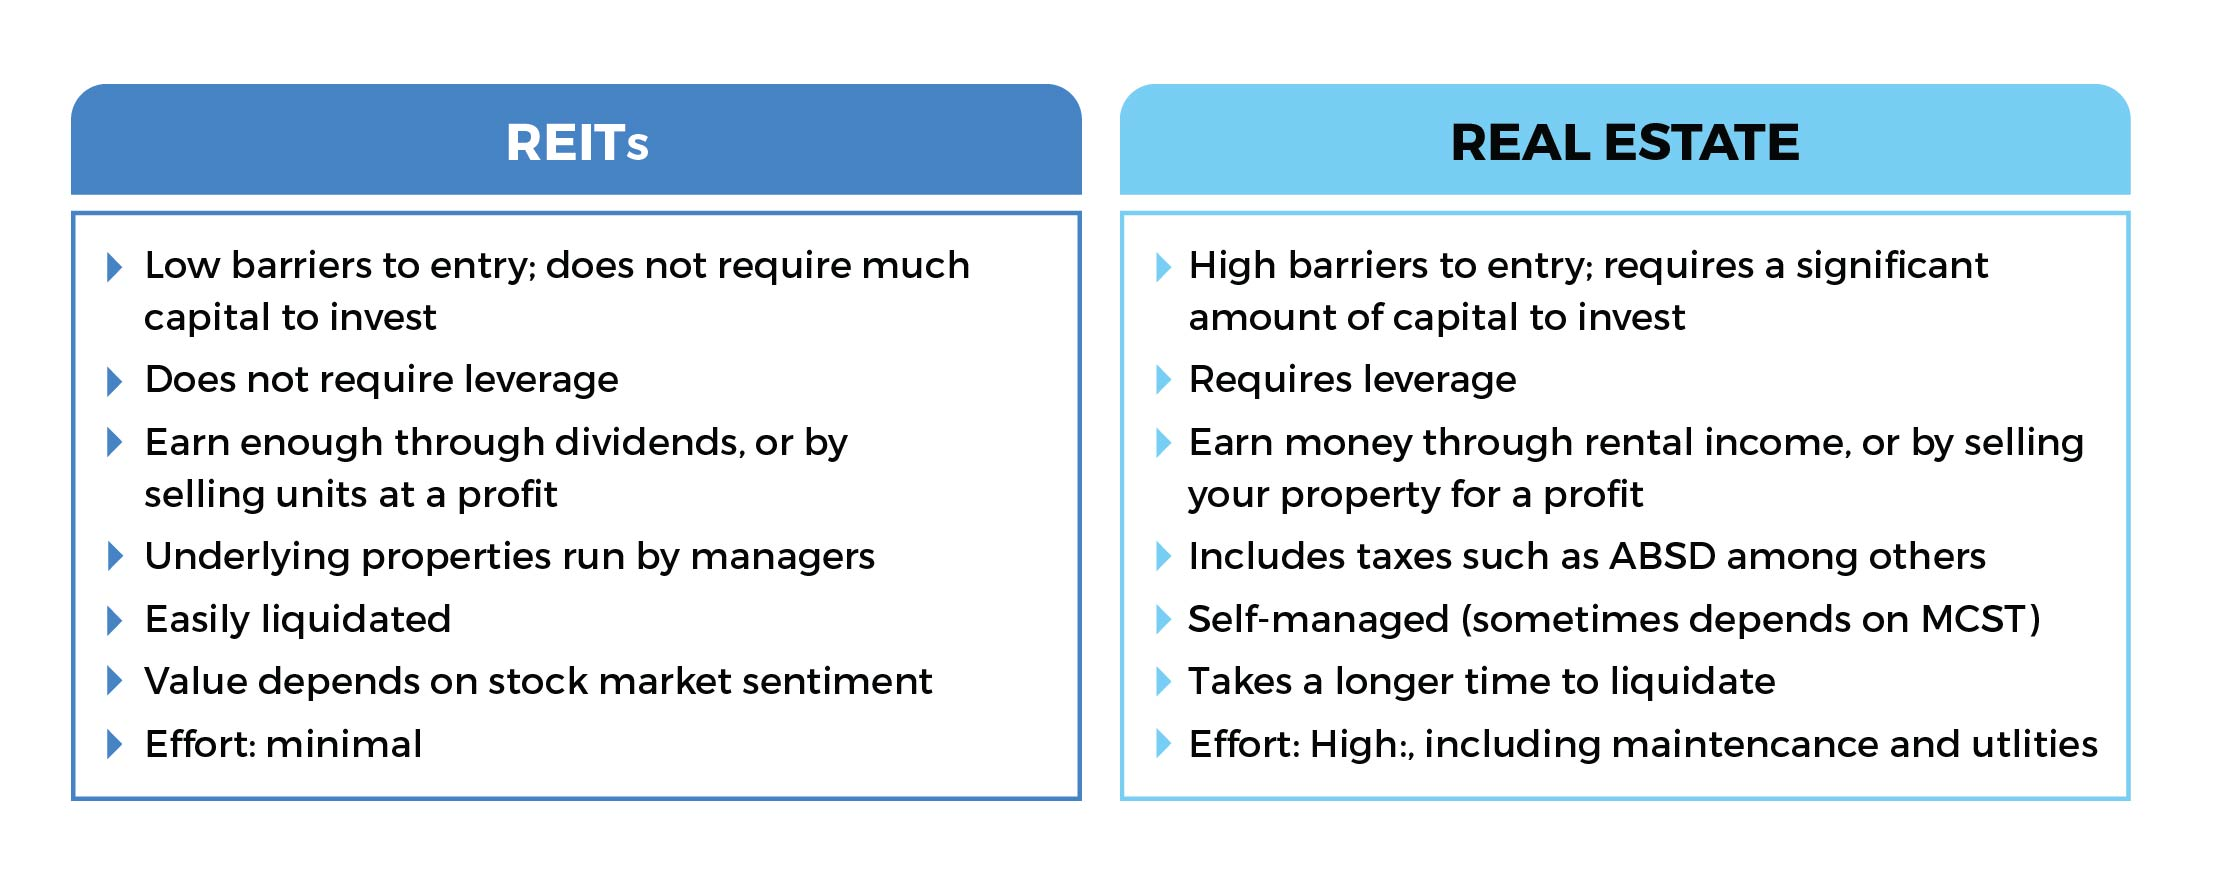 reits vs real estate